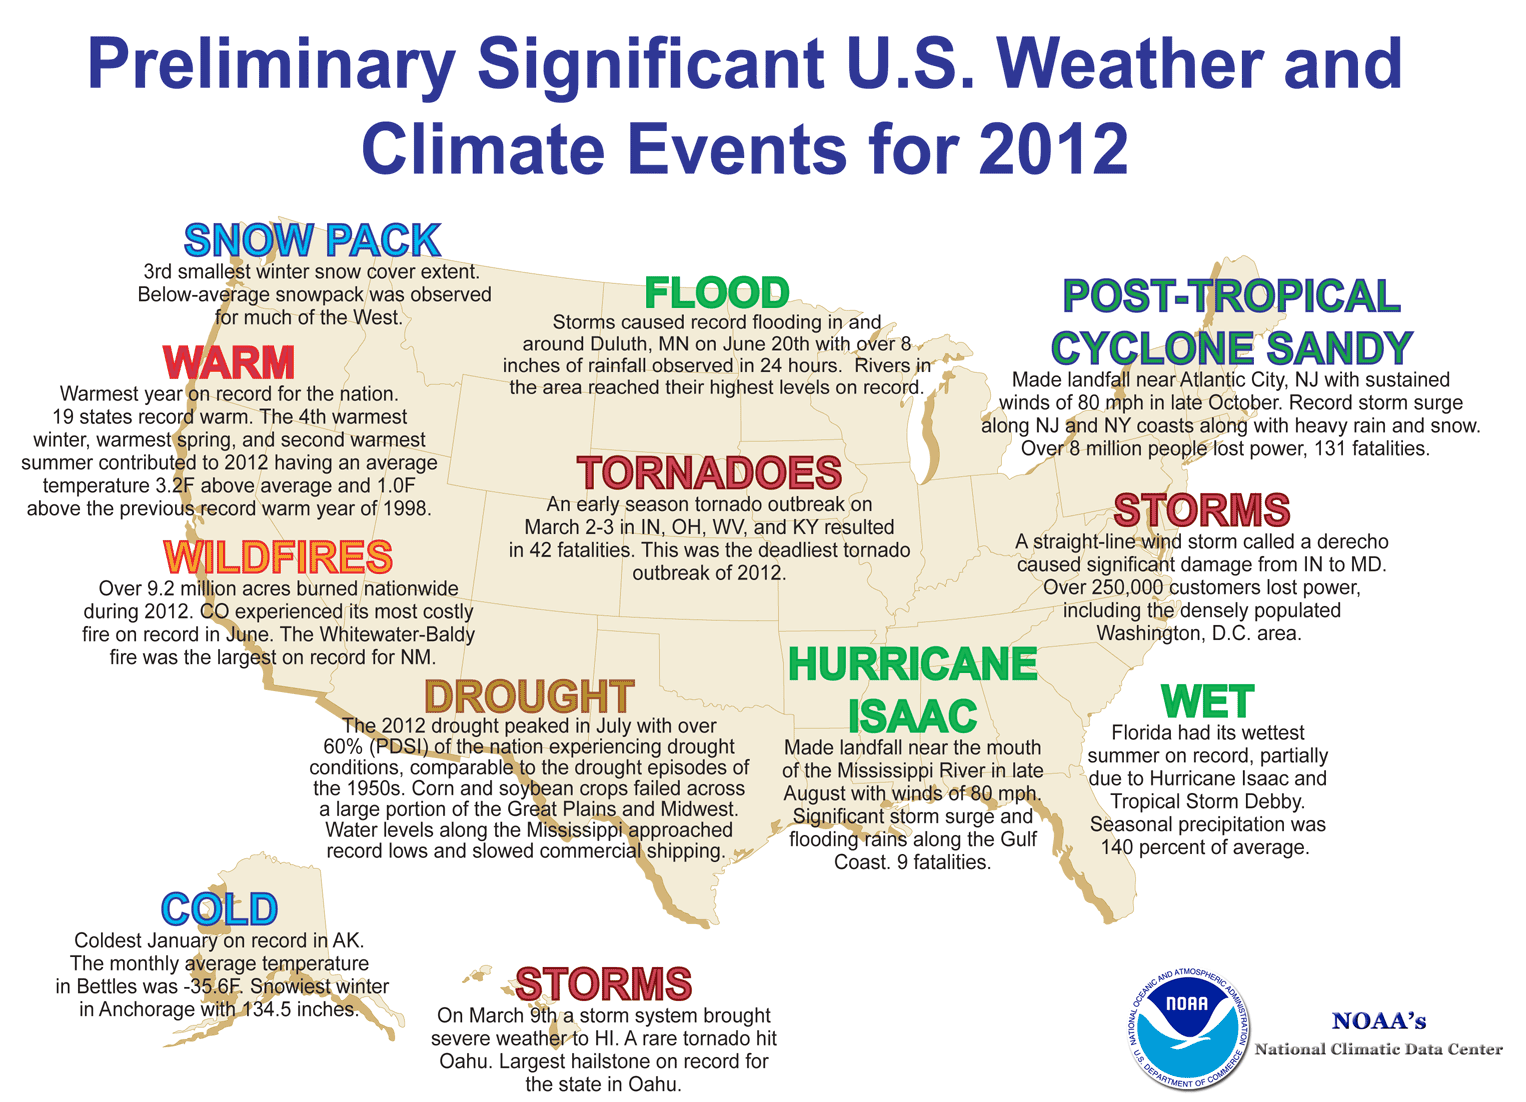 An infographic showing various severe weather types that impacted the USA during 2012.